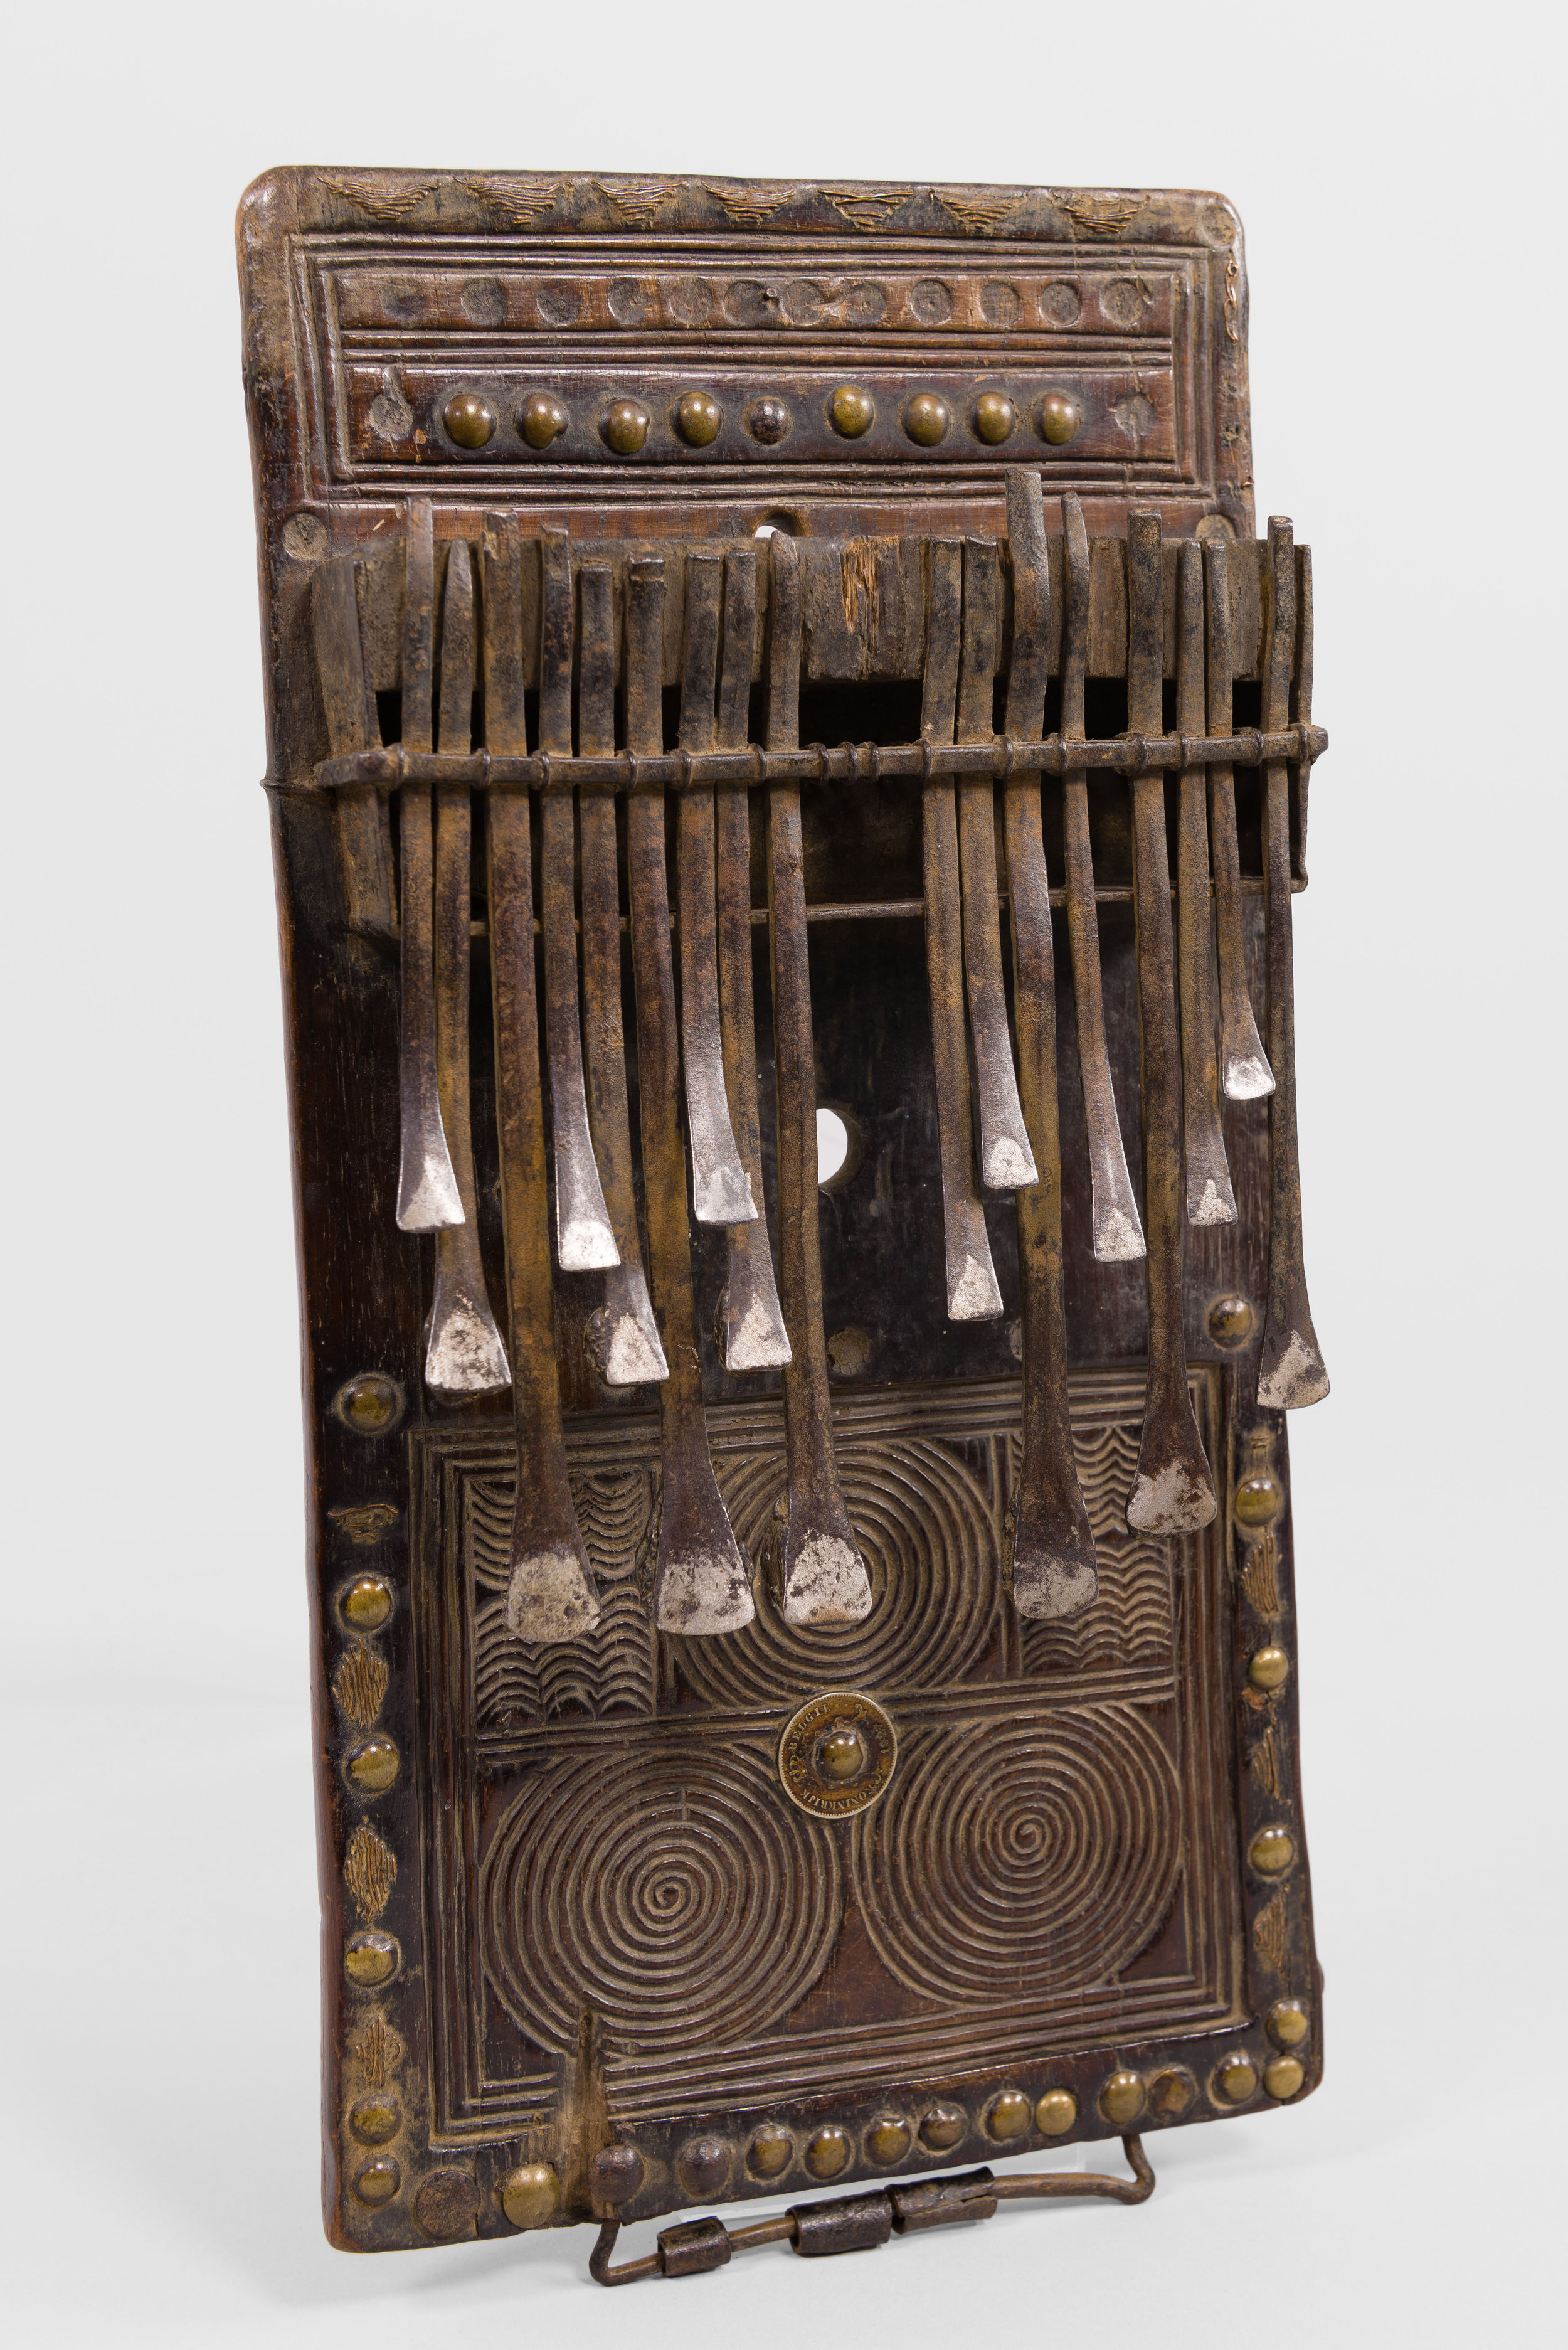 Artist unknown (Chokwe peoples, Angola), lamellophone (chisanji), late 19th century, wood, iron,H: 36.2 cm, W: 18.7 cm, D: 5.1 cm.Musical Instrument Museum 2013.56.1.Image © Musical Instrument Museum. Photograph Troy Sharp, 2016